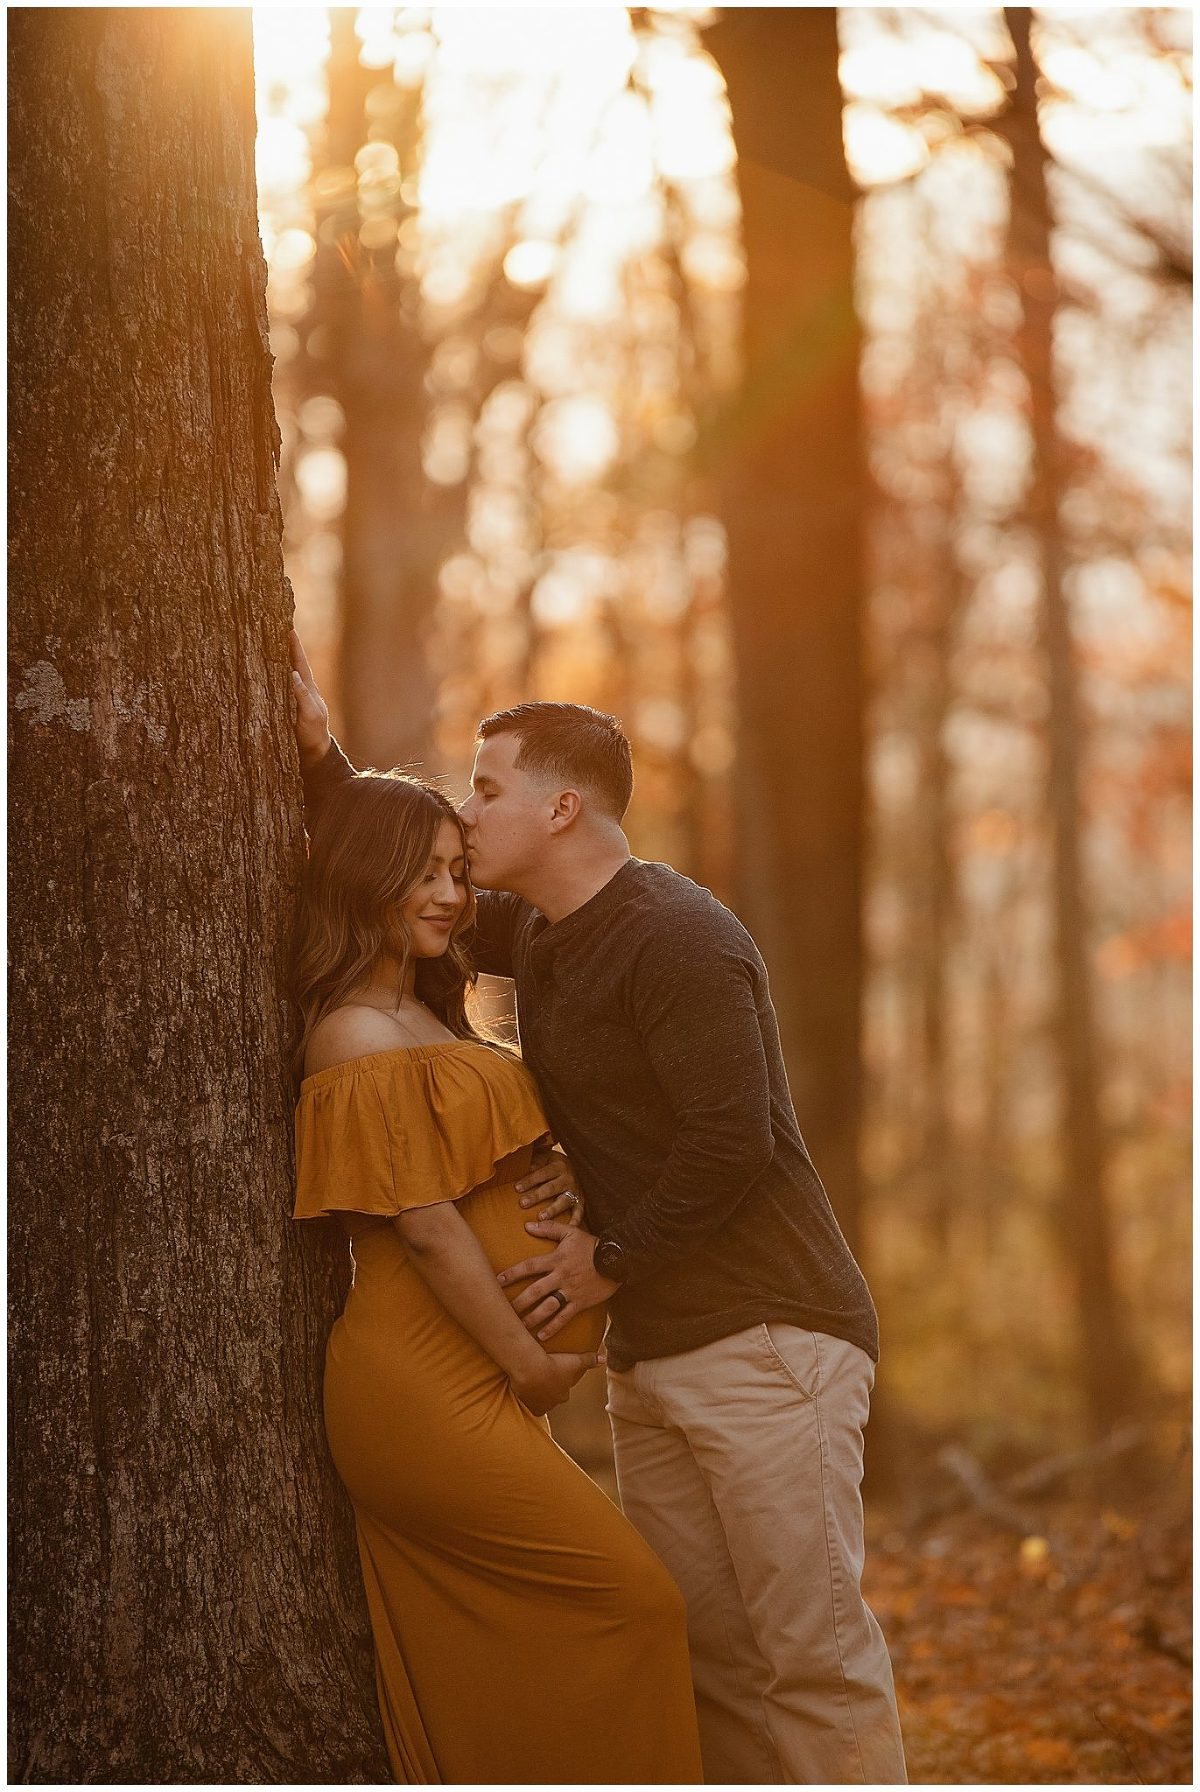 Last of Fall Connecticut best Maternity & Pregnancy Photographer for Litchfield County CT, Fairfield County CT and Westchester County NY